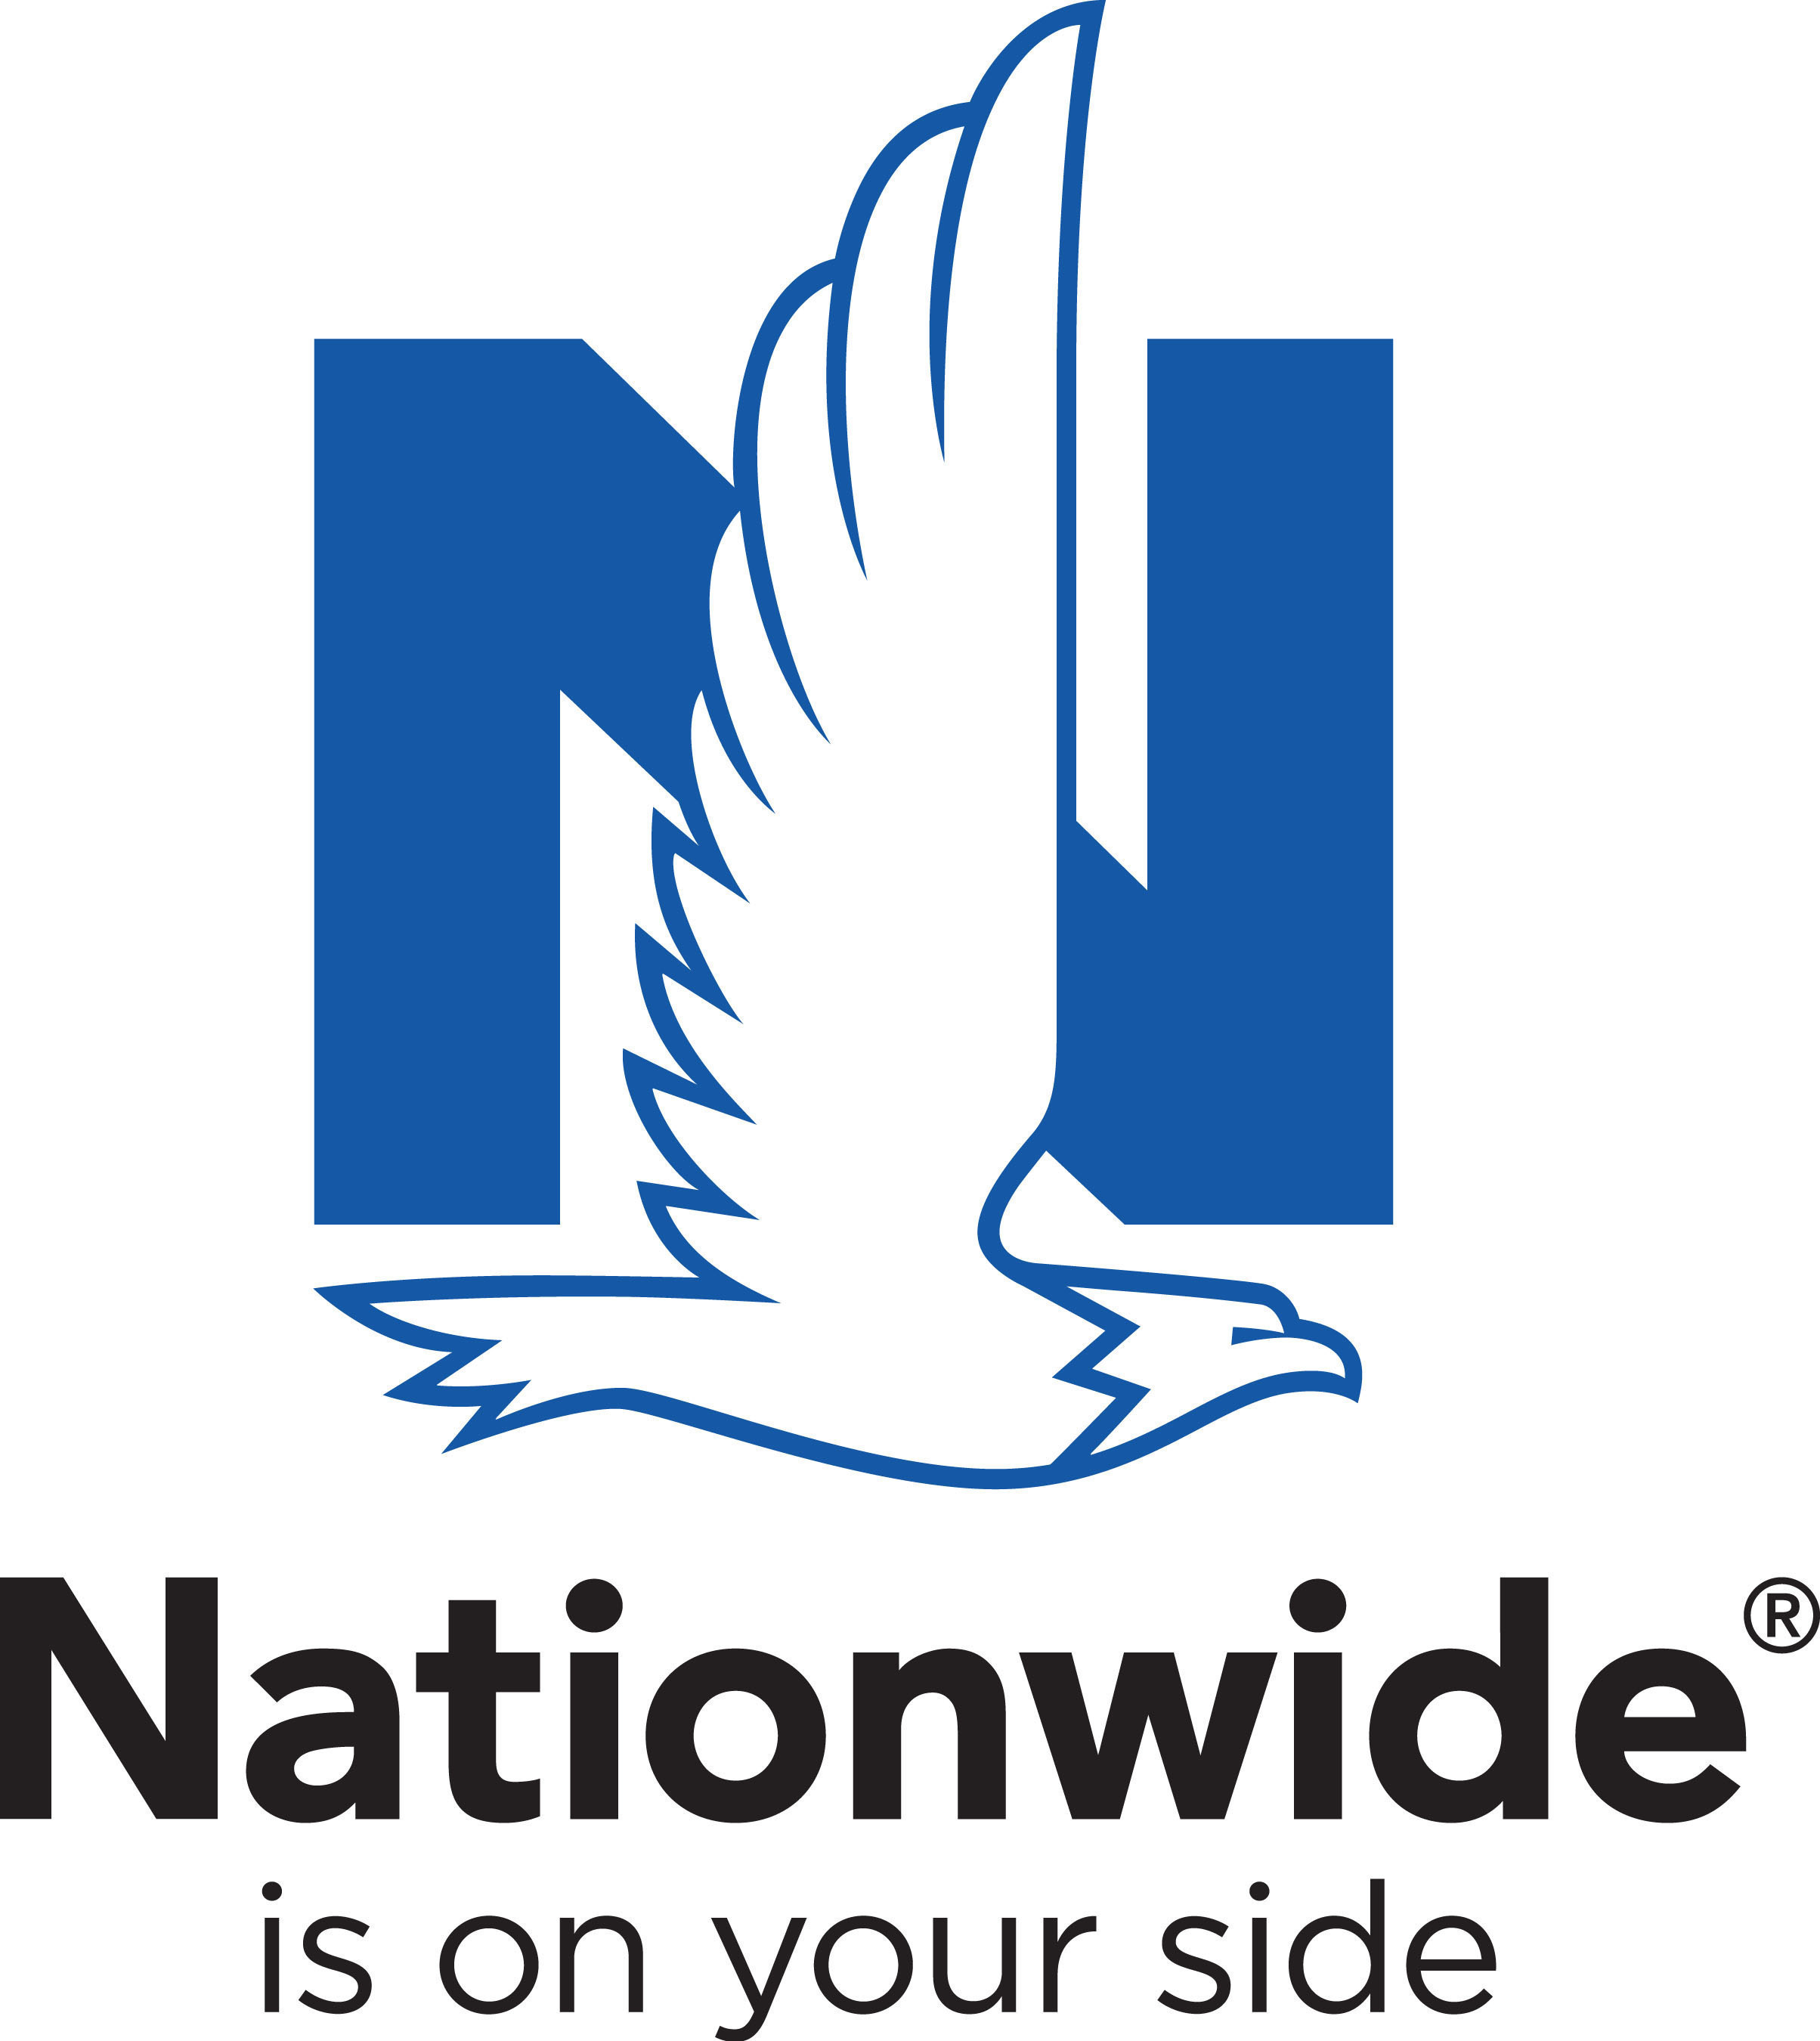 Nationwide Quote Nationwide Building Society Home Insurance Quote  44Billionlater